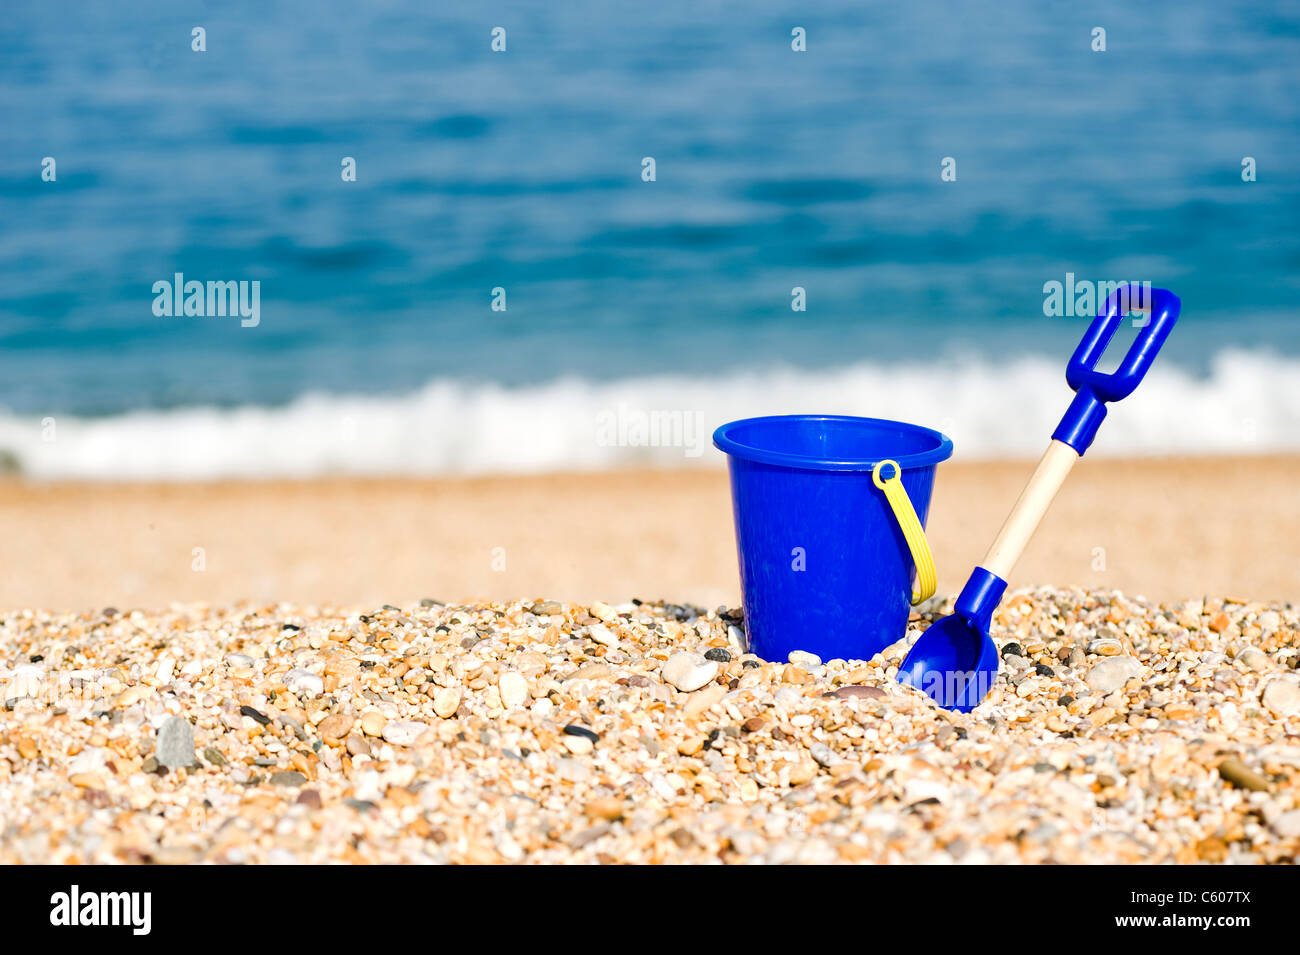 Blue Childrens Toy Bucket and Spade on the Beach - Stock Image